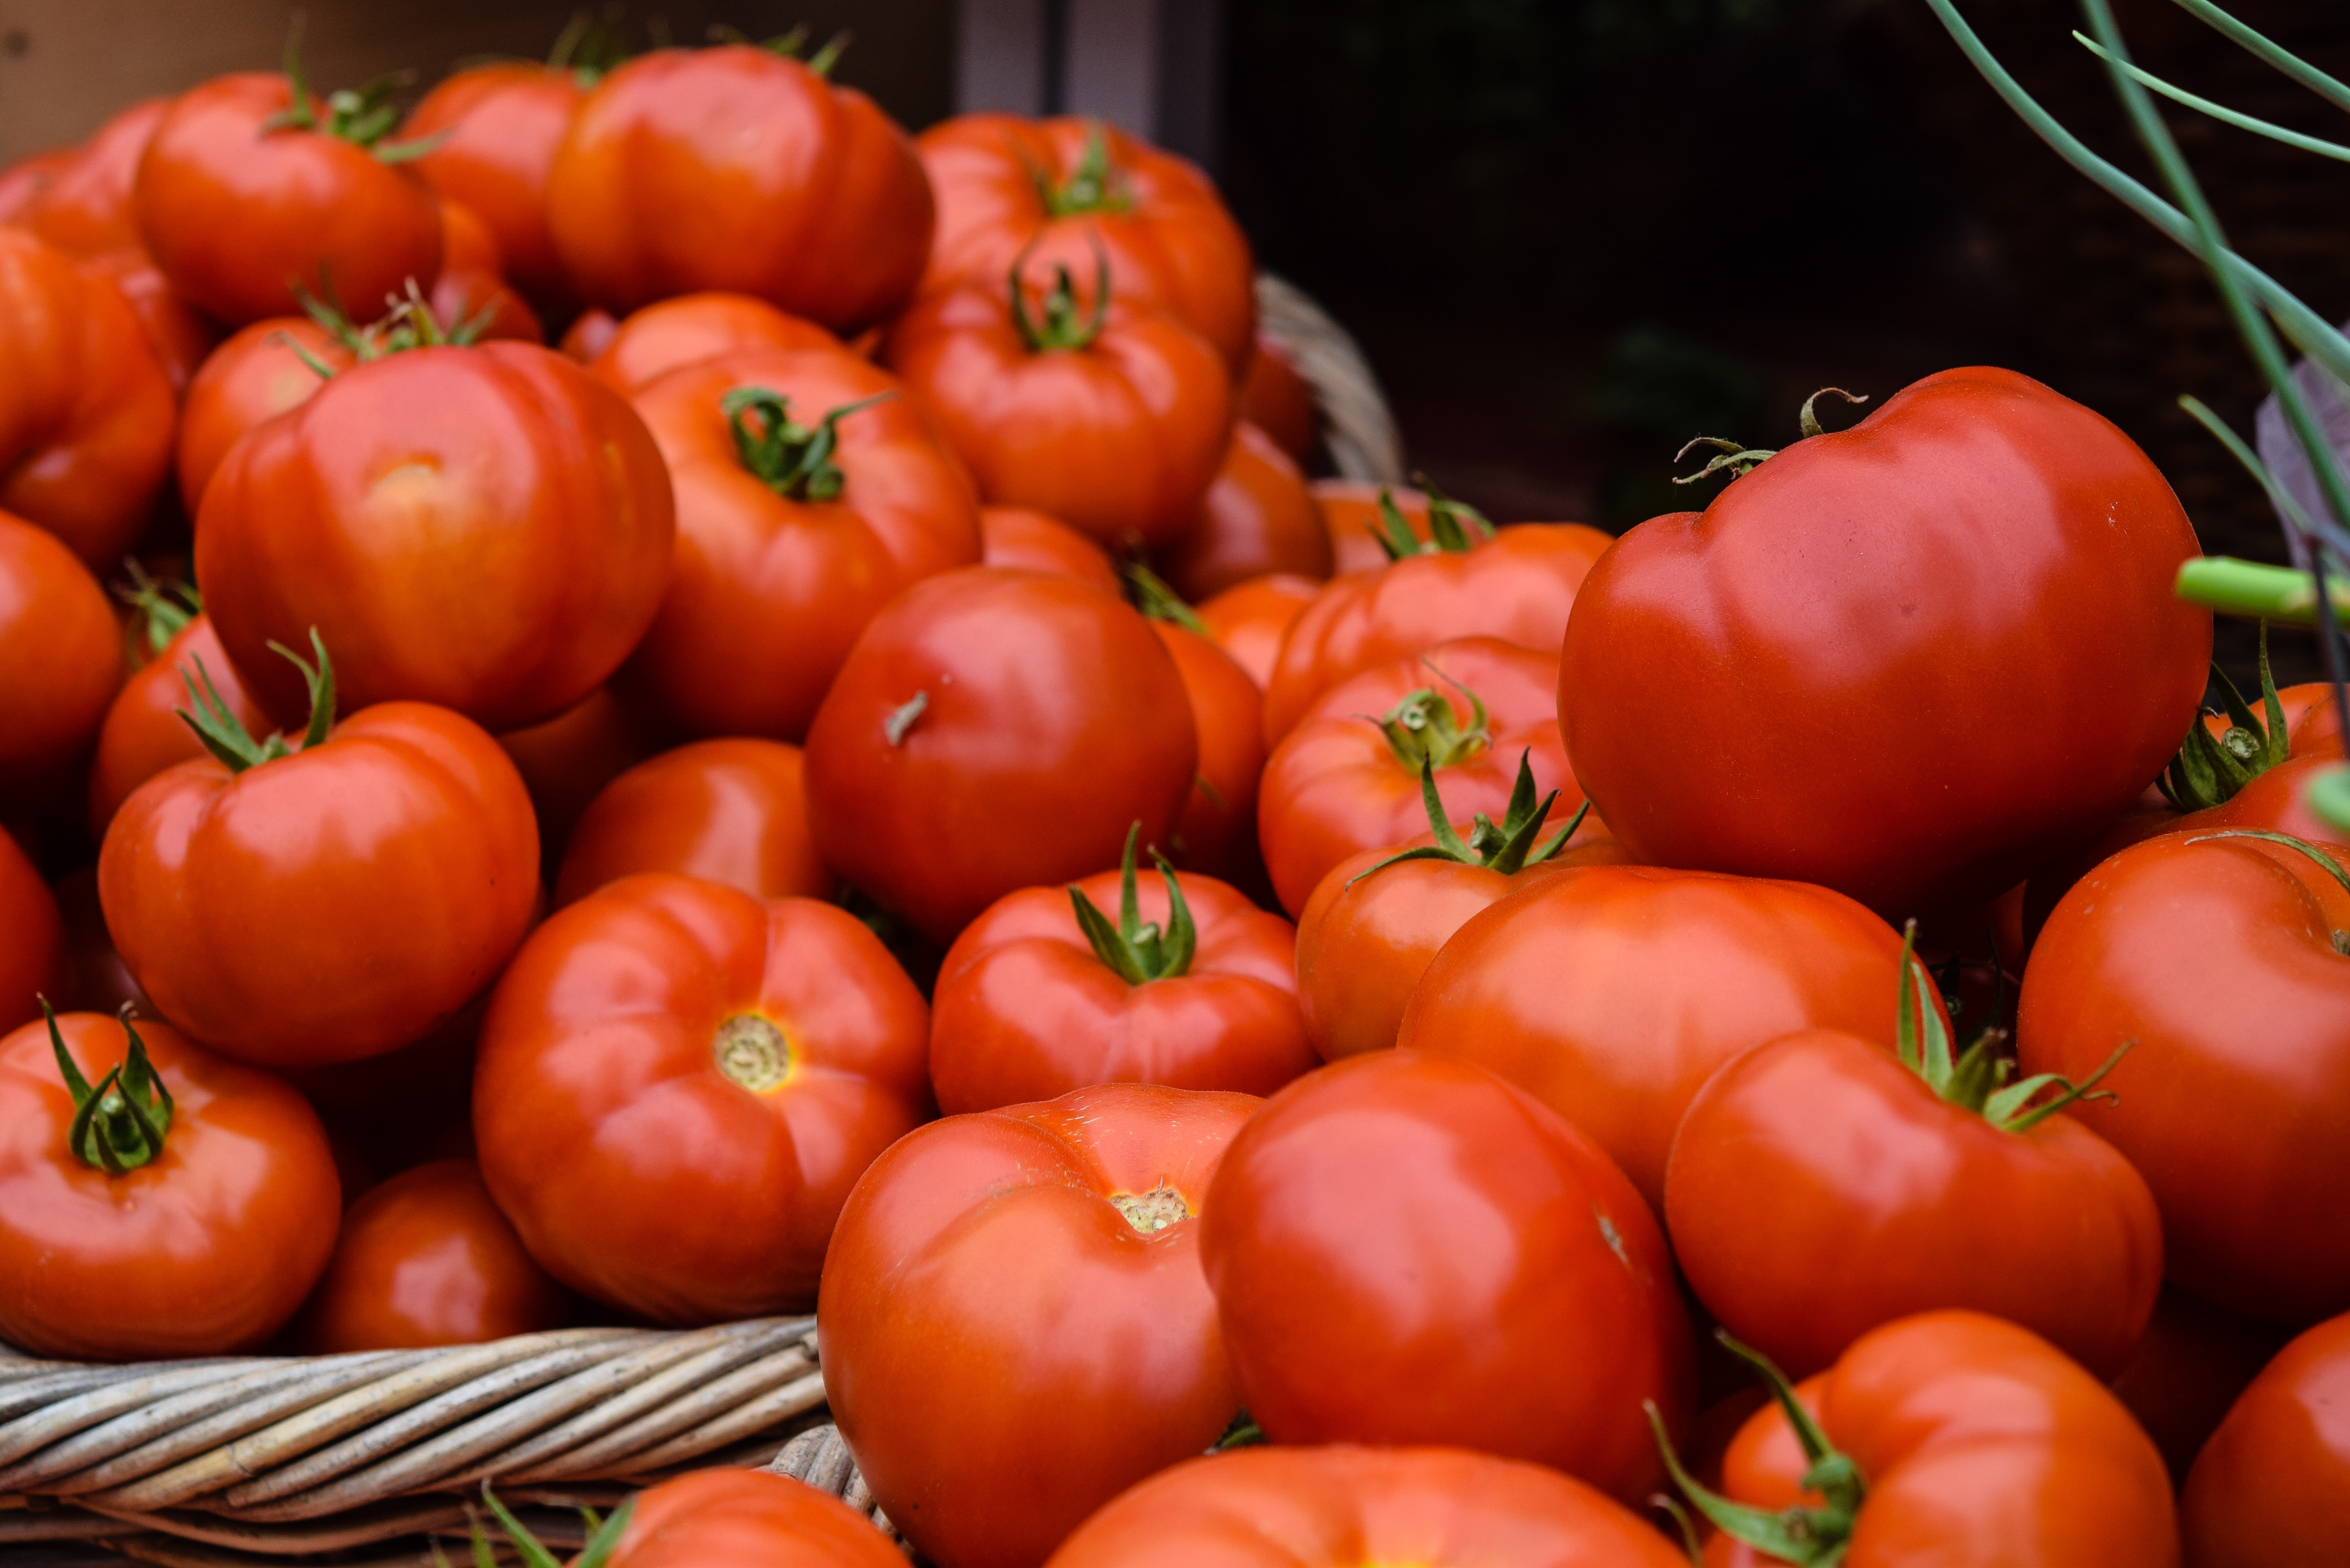 Incurable tomato virus found in France for first time